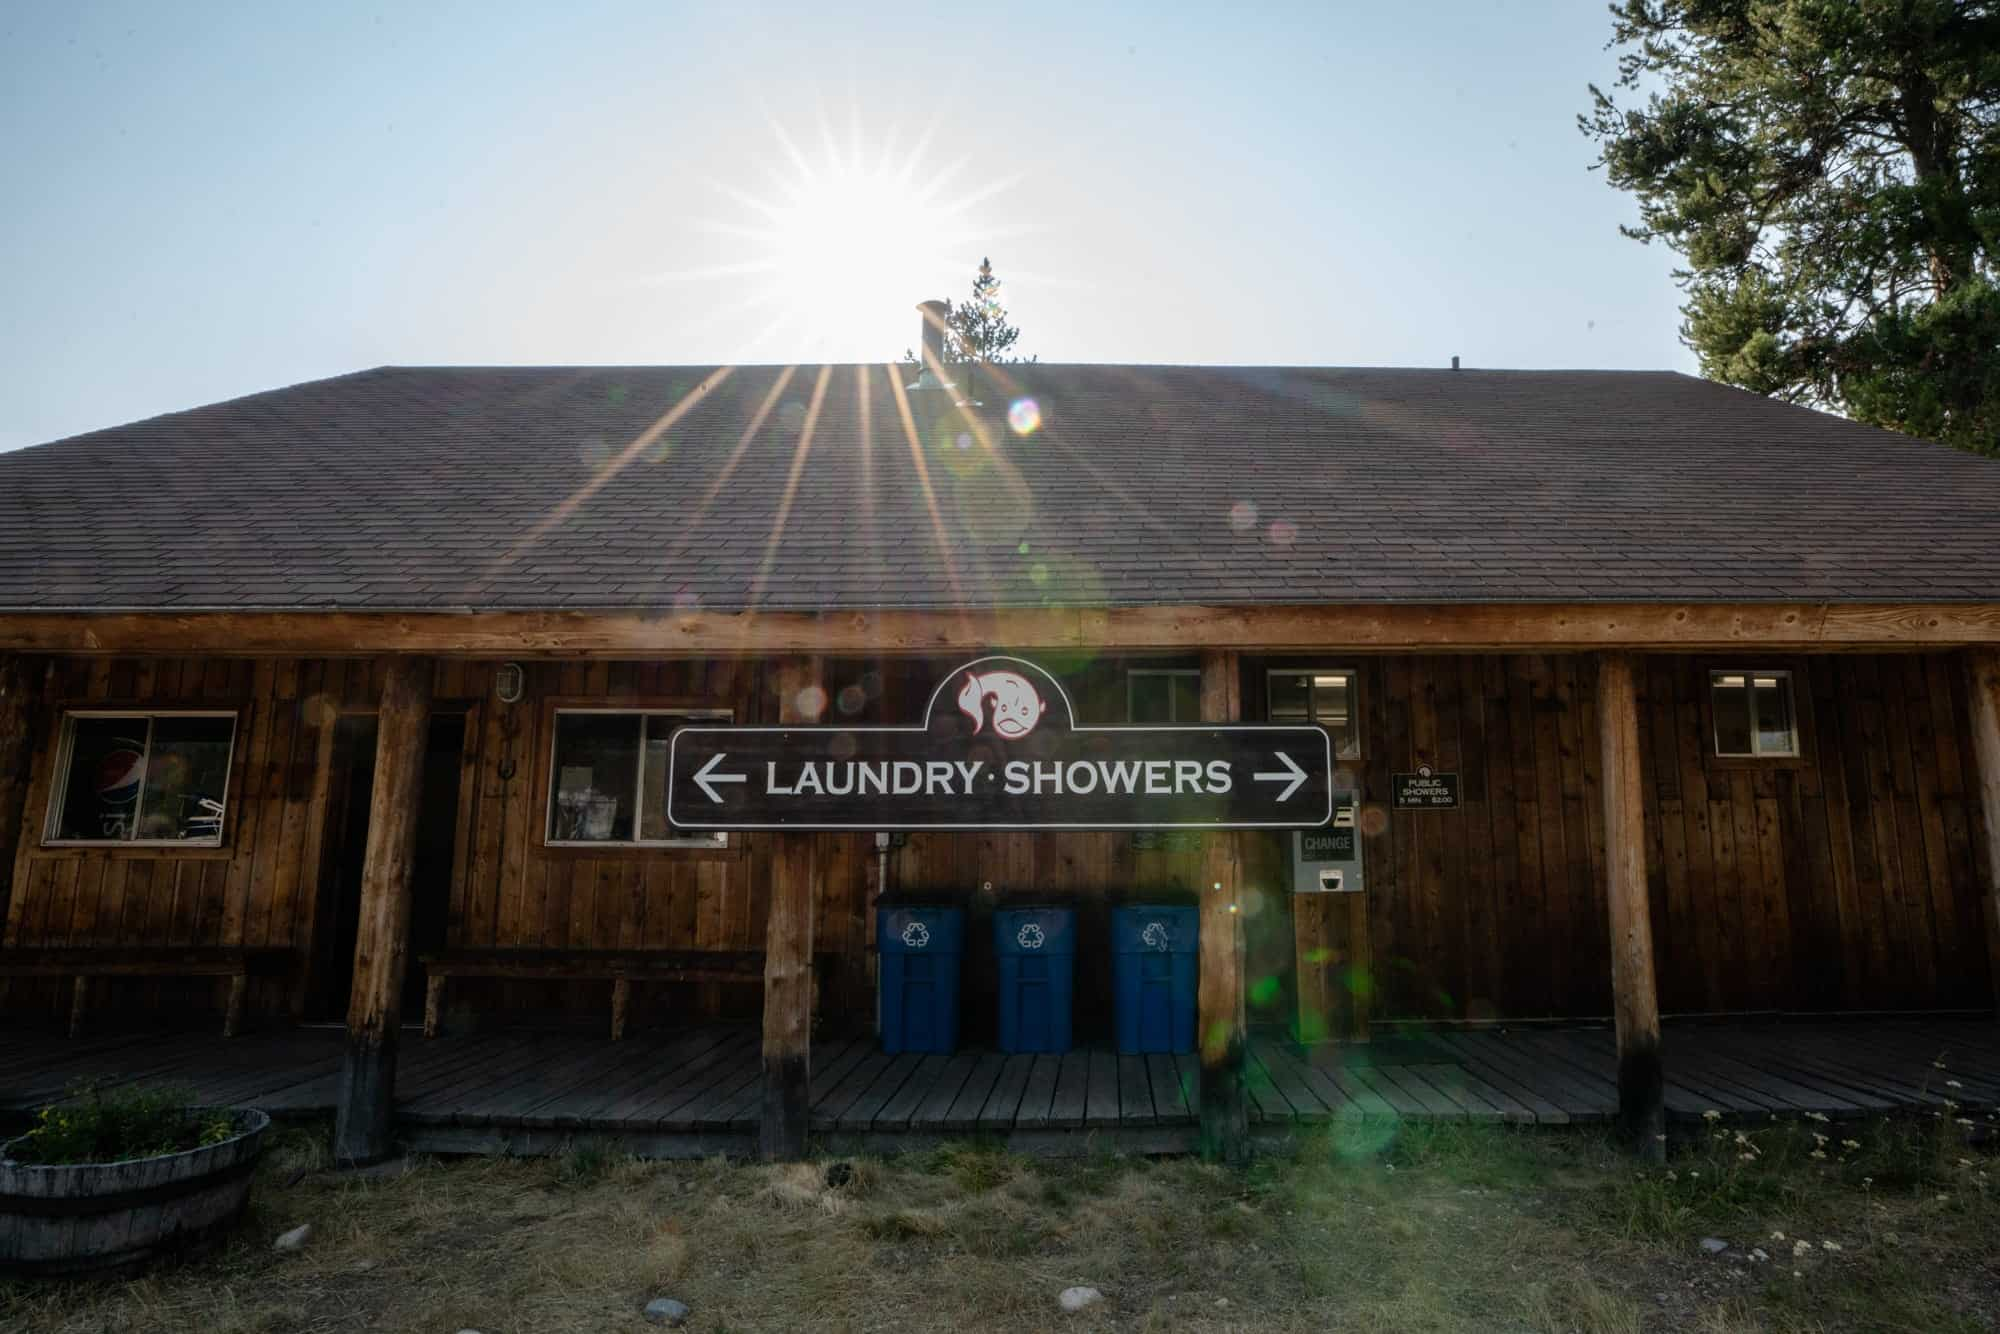 Where to shower when you live in a van